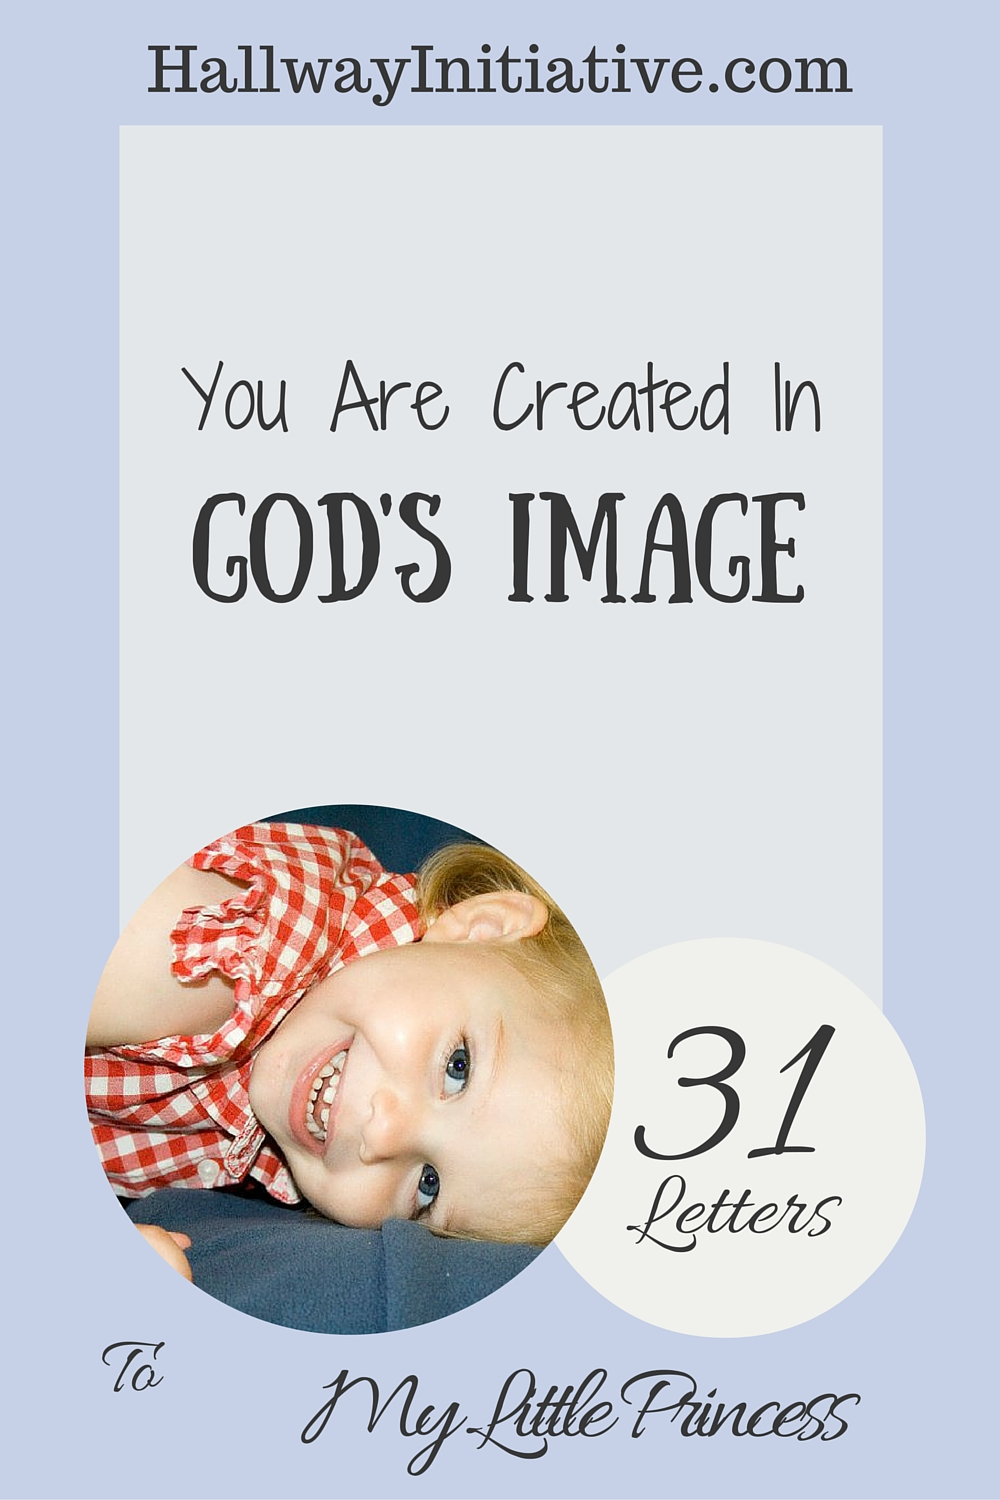 You are created in God's image